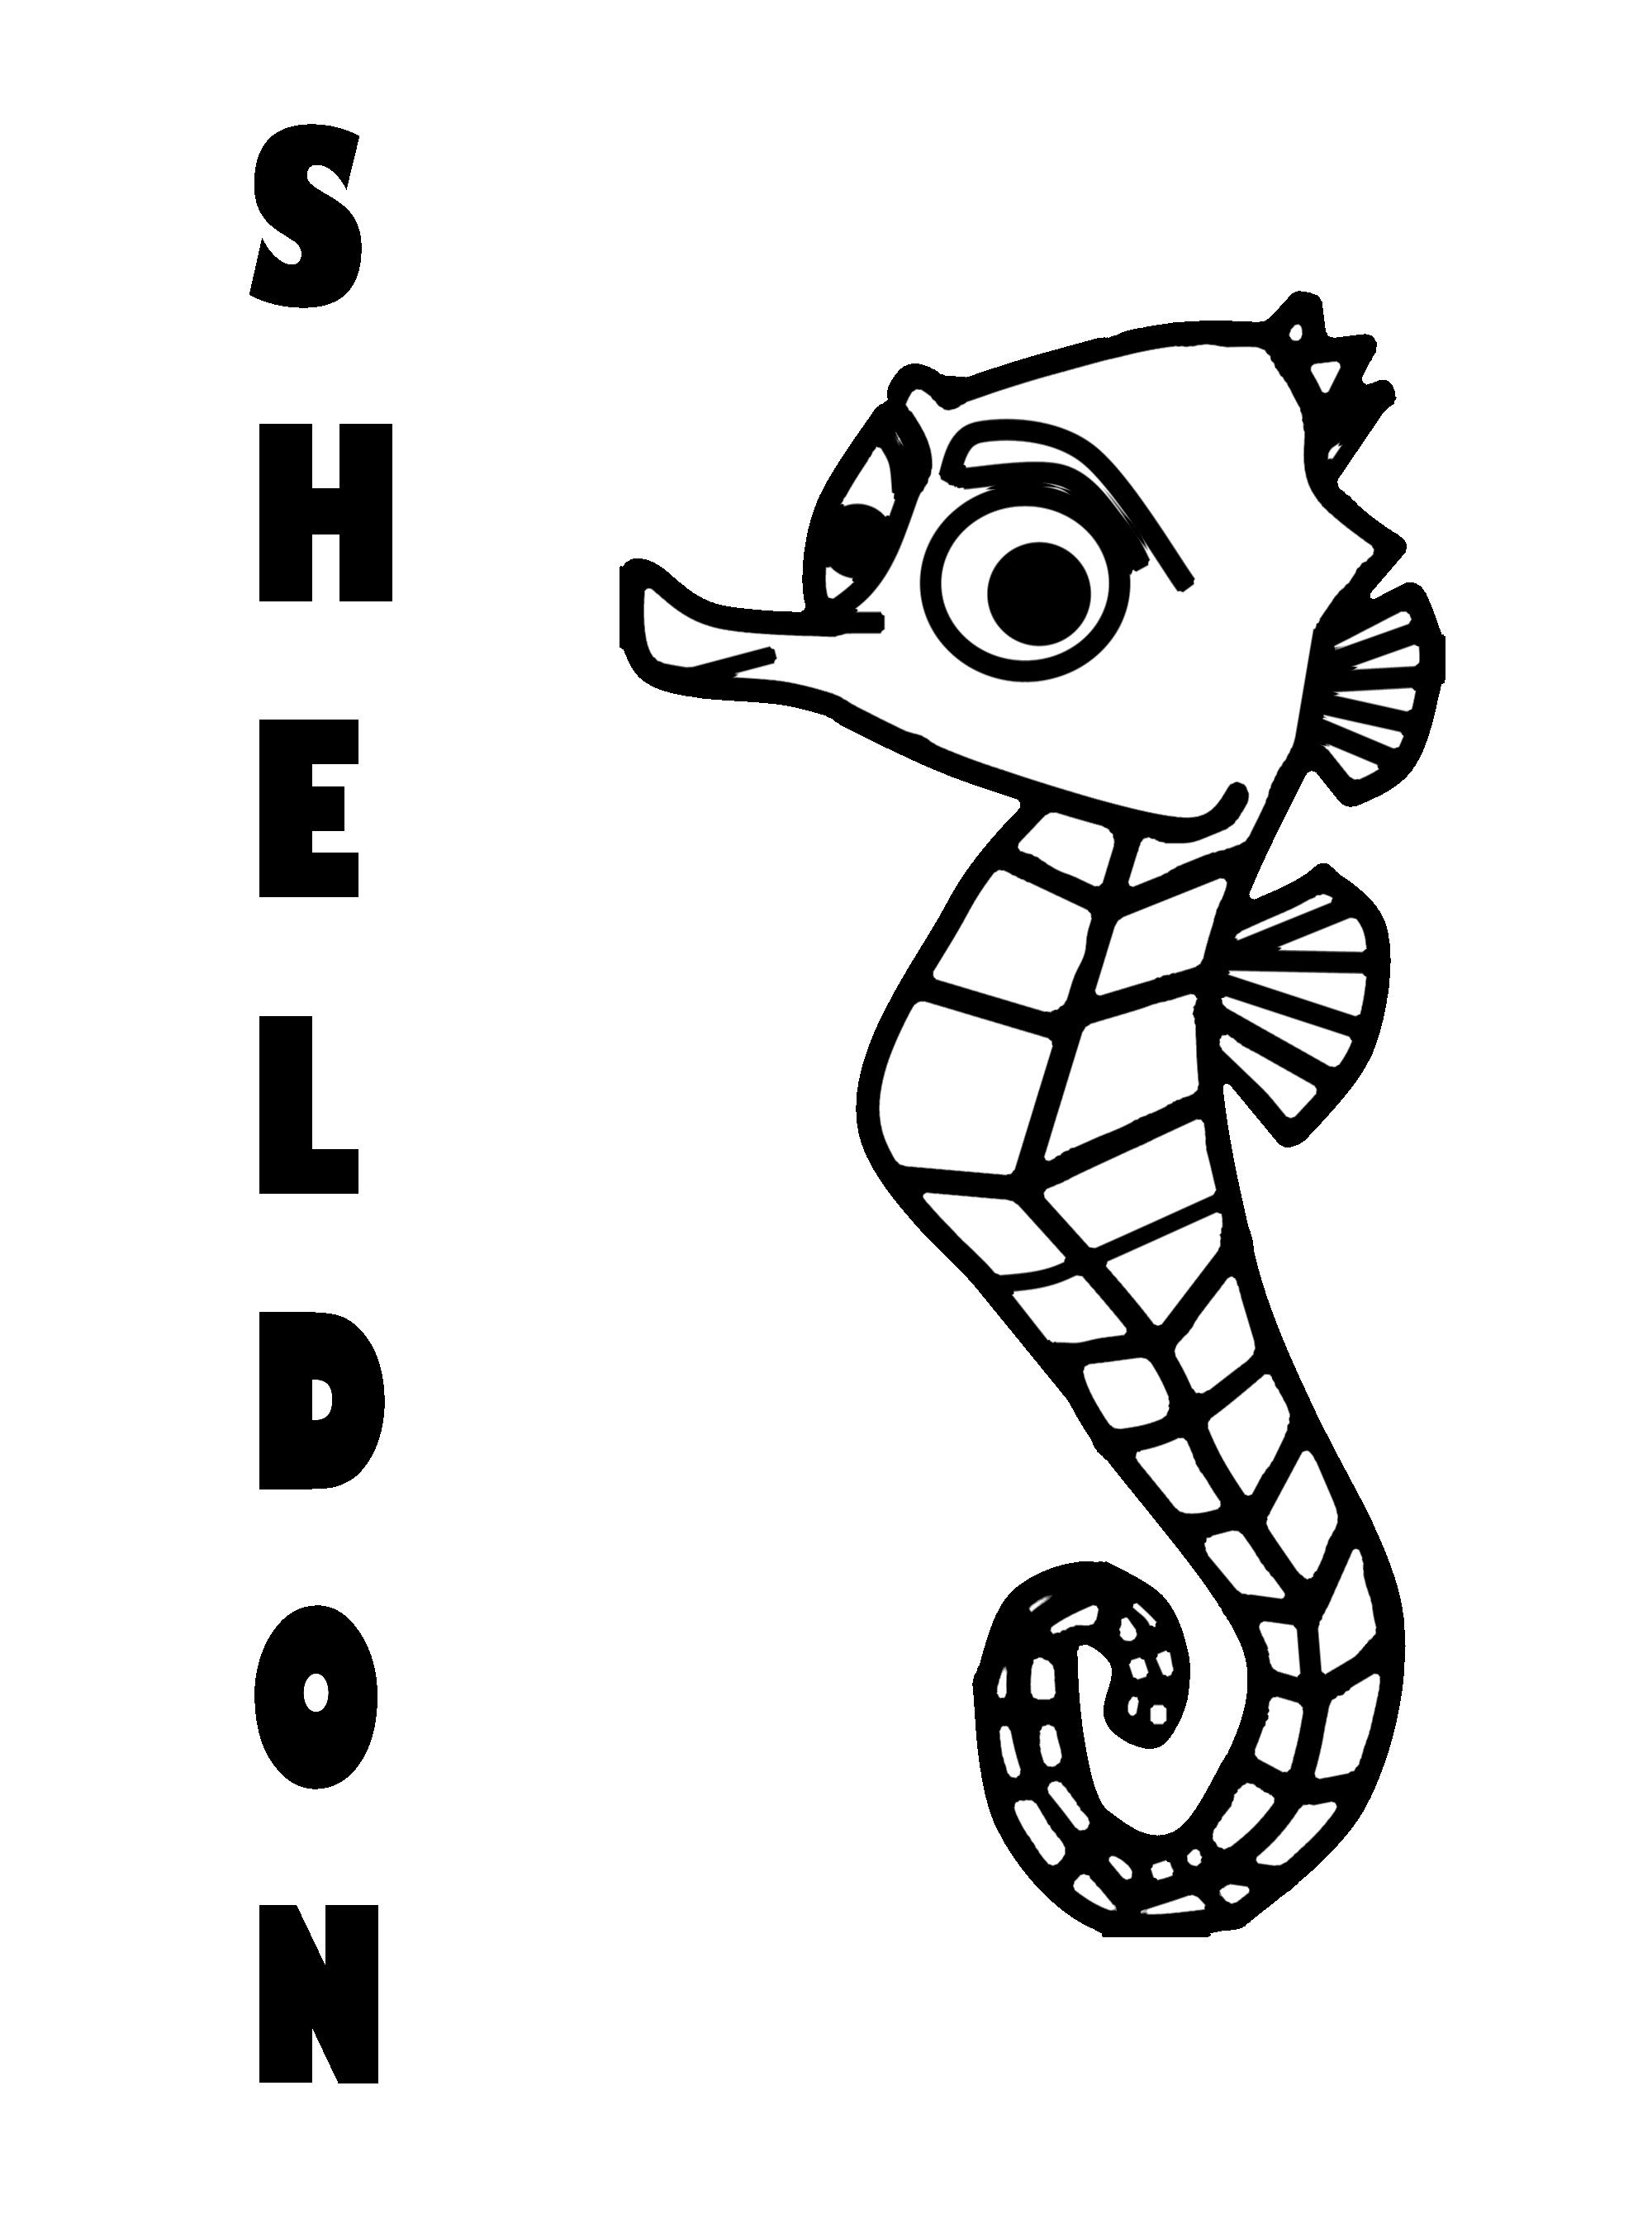 Free Printable Nemo Coloring Pages For Kids Nemo Coloring Pages